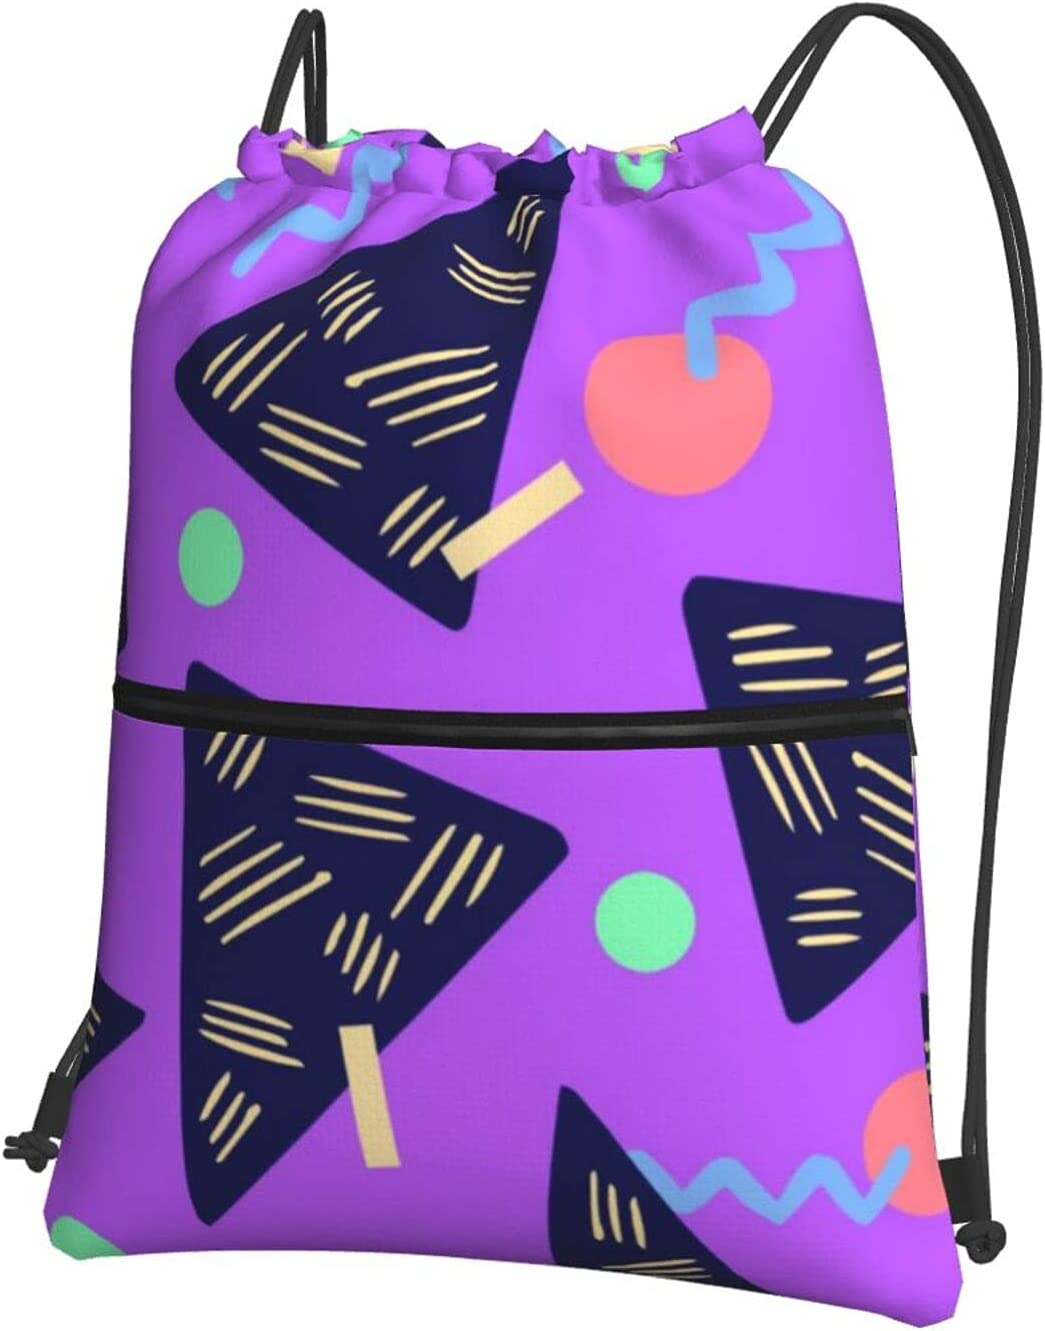 Vintage 80s 90s Triangle Drawstring C Backpack Recommendation Waterproof Sales Zipper